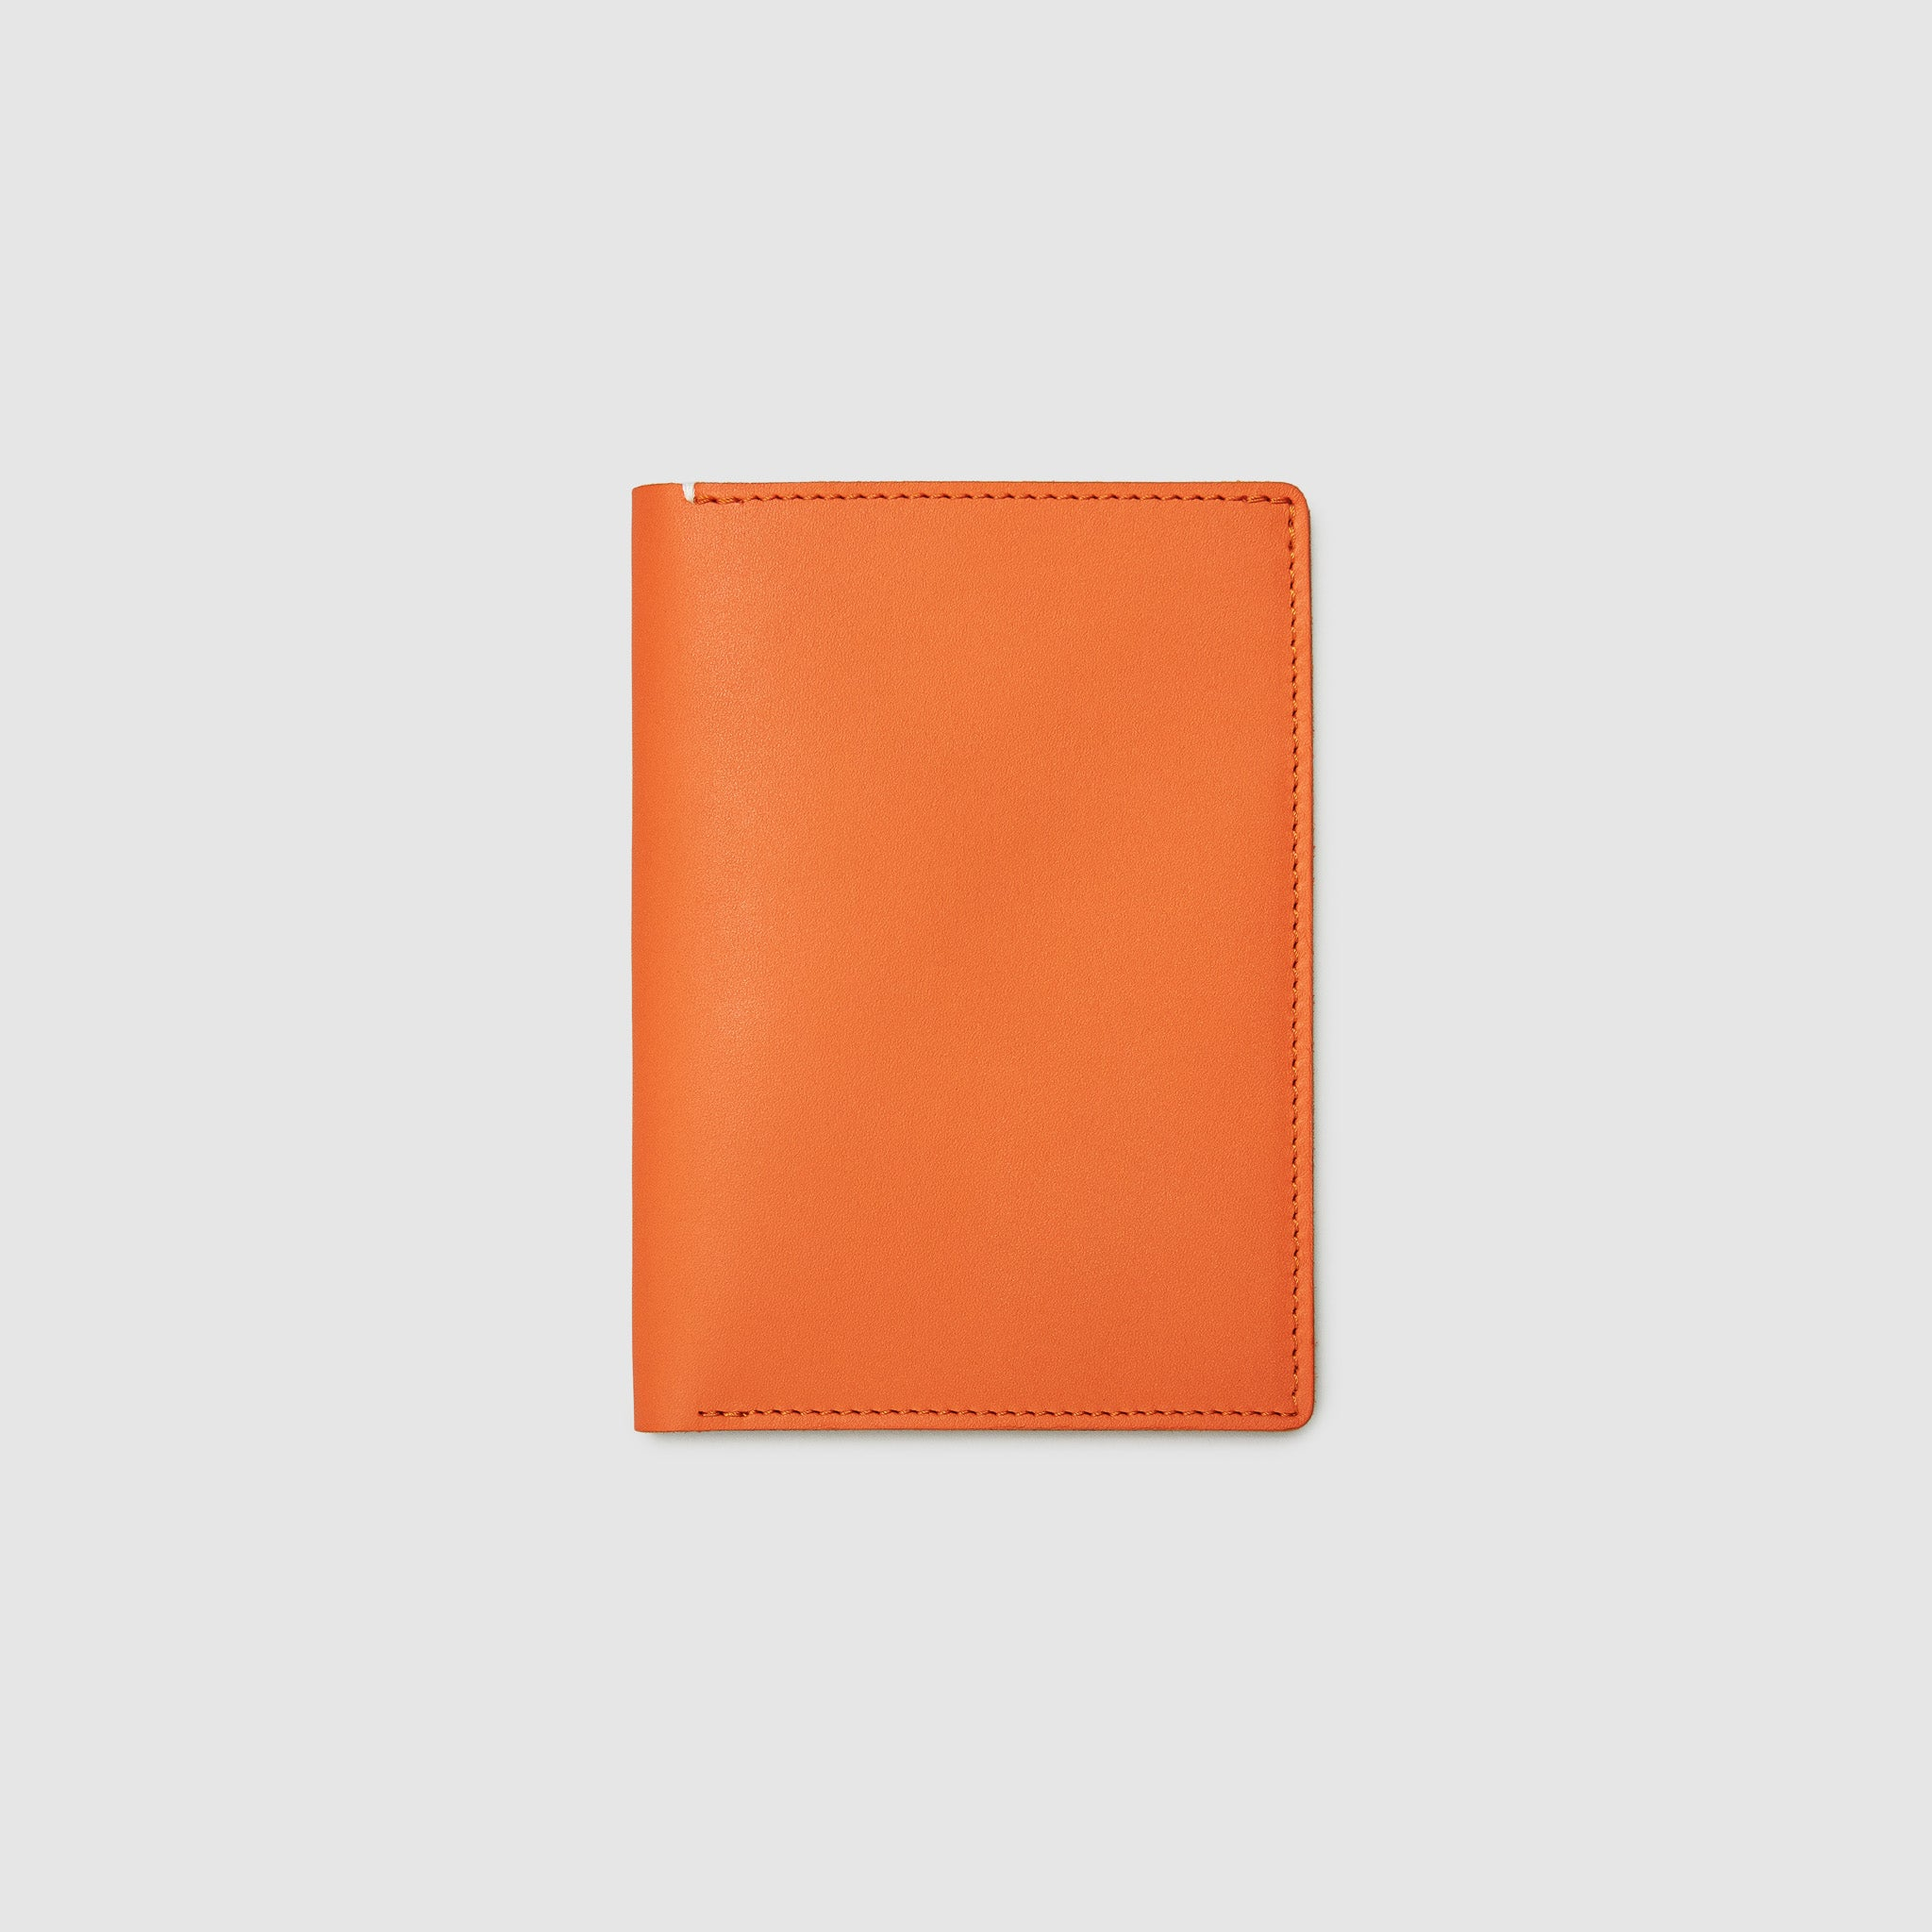 PASSPORT WALLET WALLET ANSON CALDER French Calfskin _blackPASSPORT WALLET WALLET ANSON CALDER French Calfskin _fshd-orange